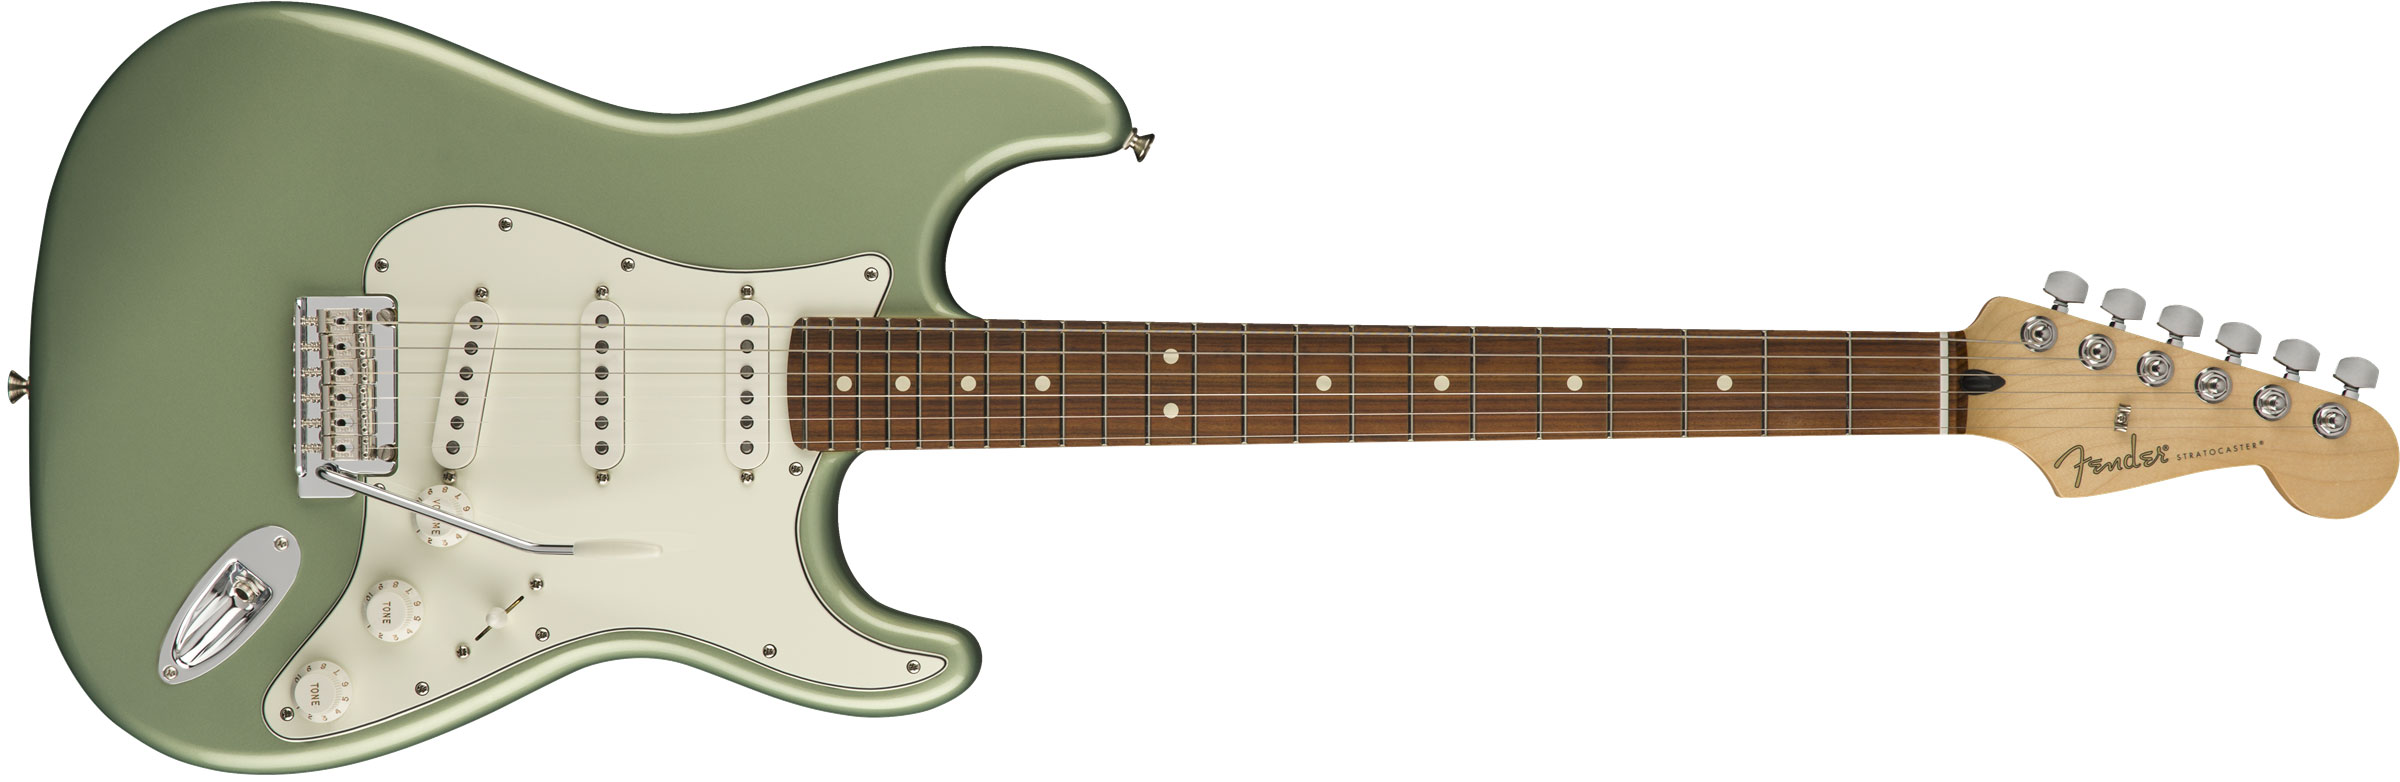 GUITARRA FENDER 014 4503 - PLAYER STRATOCASTER PF - 519 - SAGE GREEN METALLIC